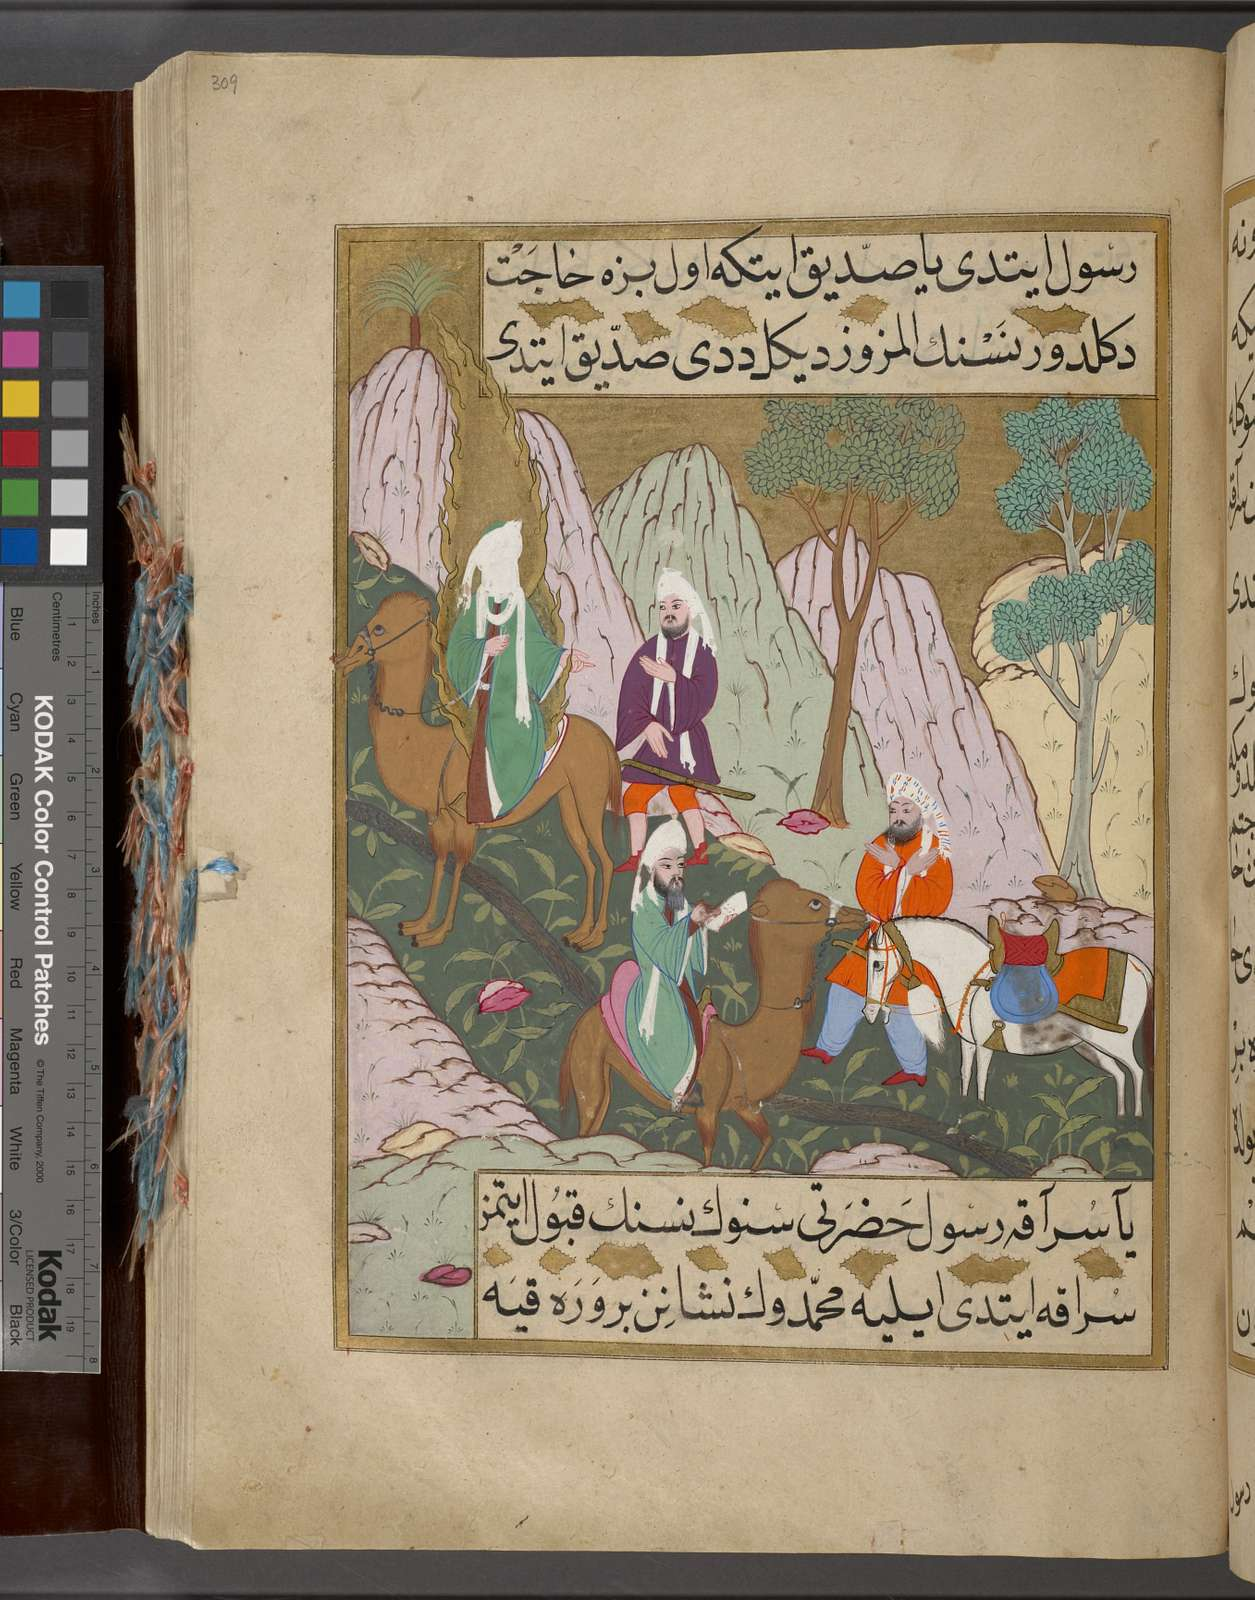 Surâqah ibn Mâlik comes to kill Muhammad but his horse is stuck in the ground and refuses to approach the victim.